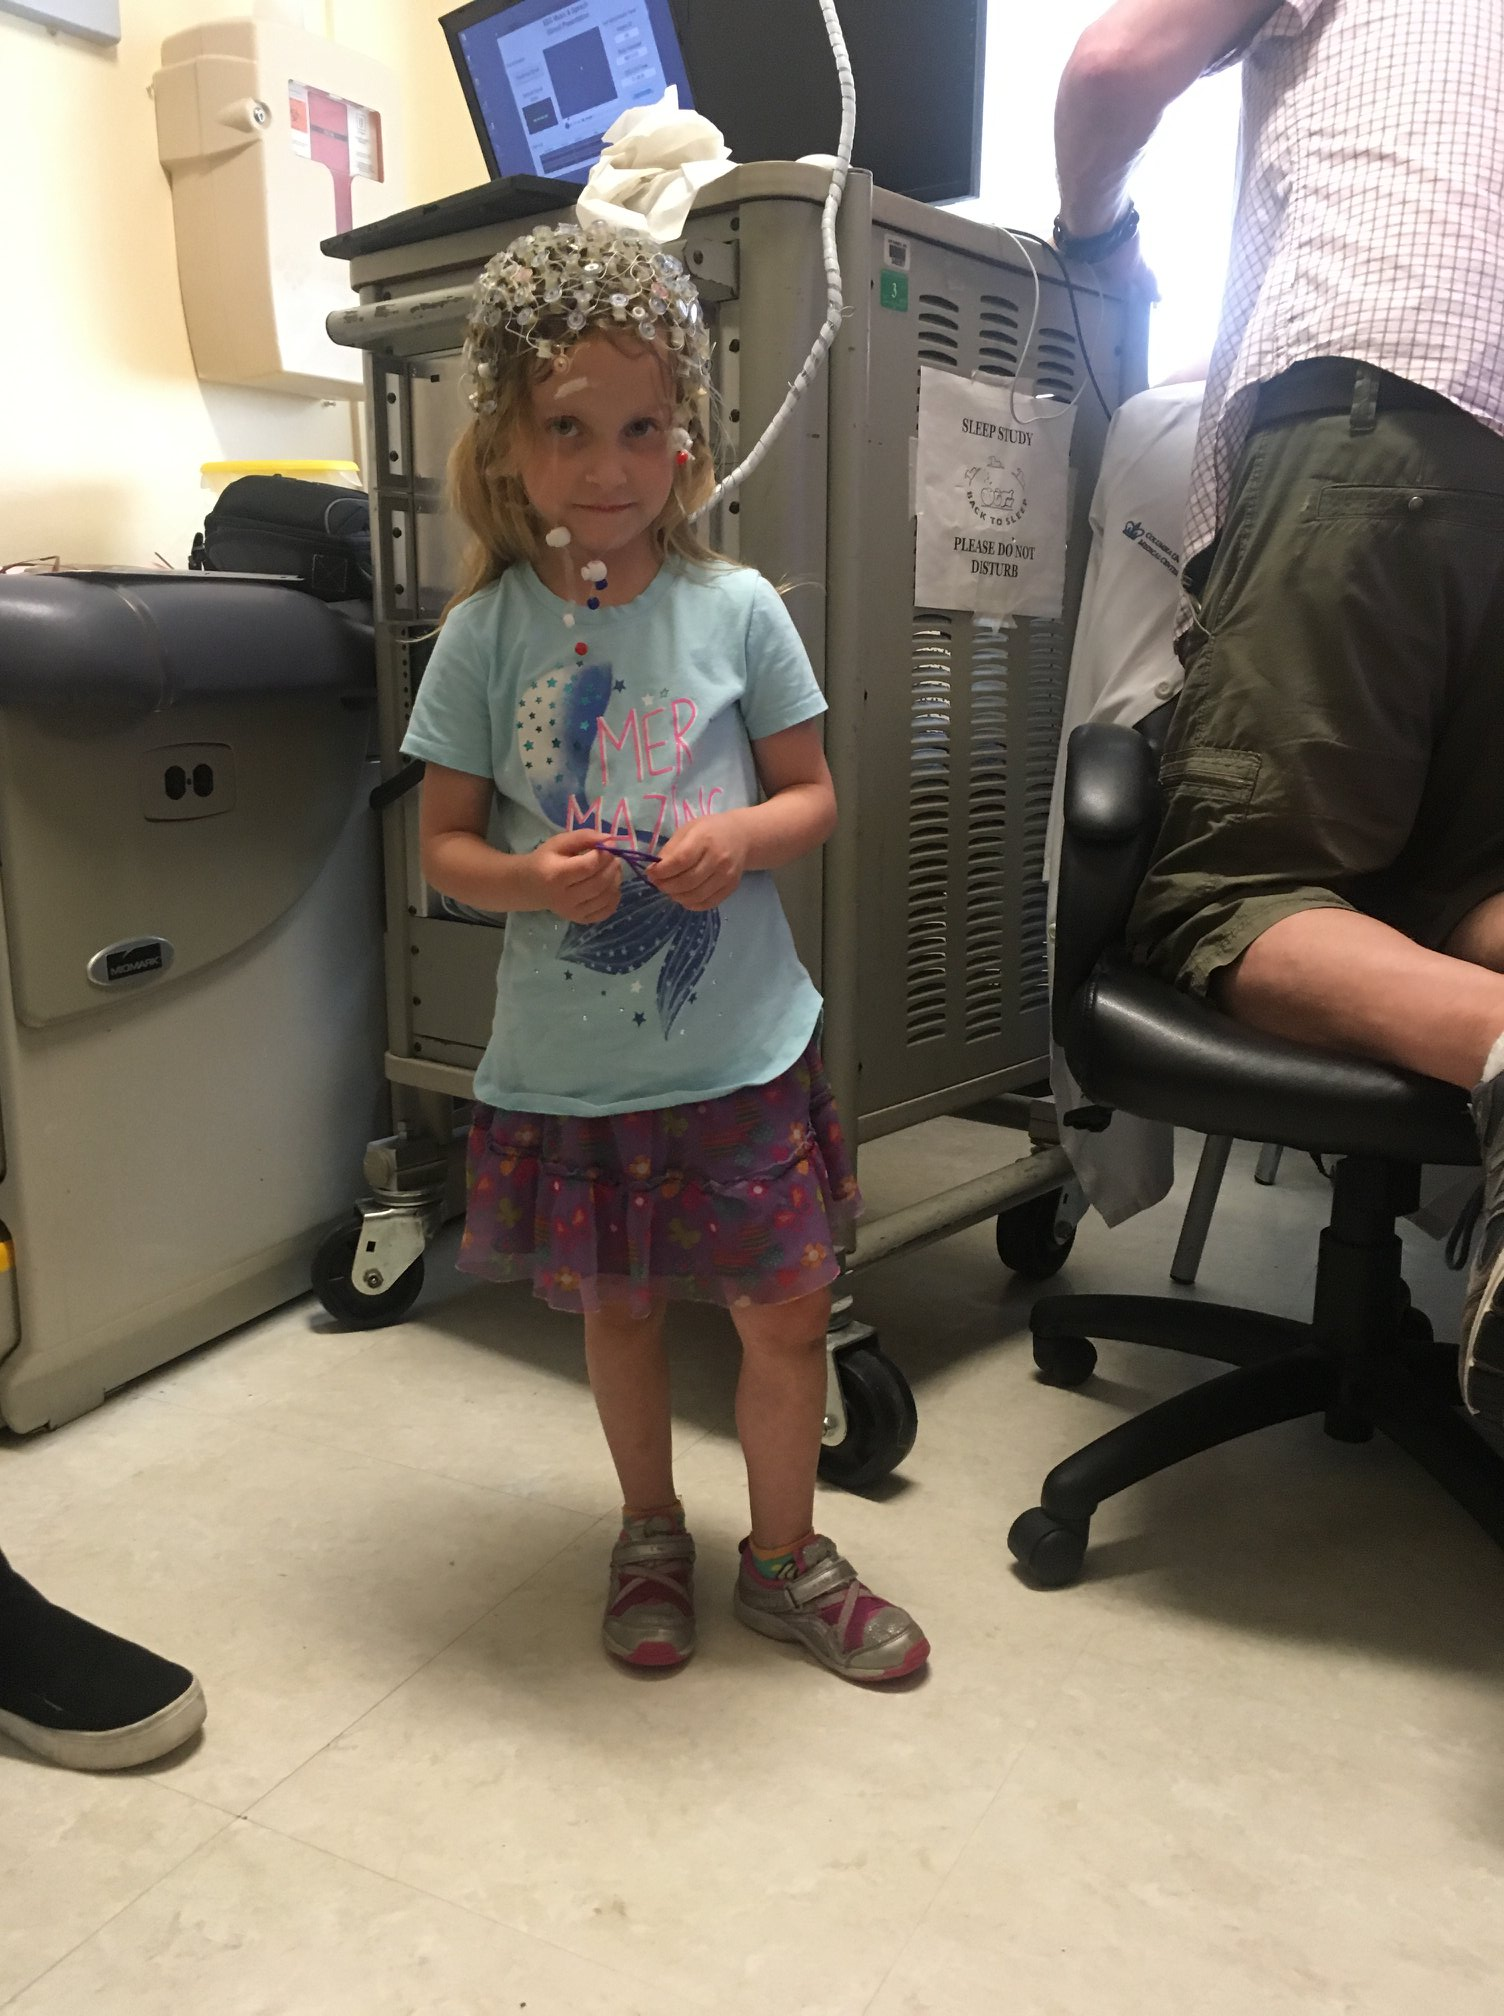 The child is equipped with an EEG cap that is connected to a machine that processes the activity on the scalp while the child listens to music.